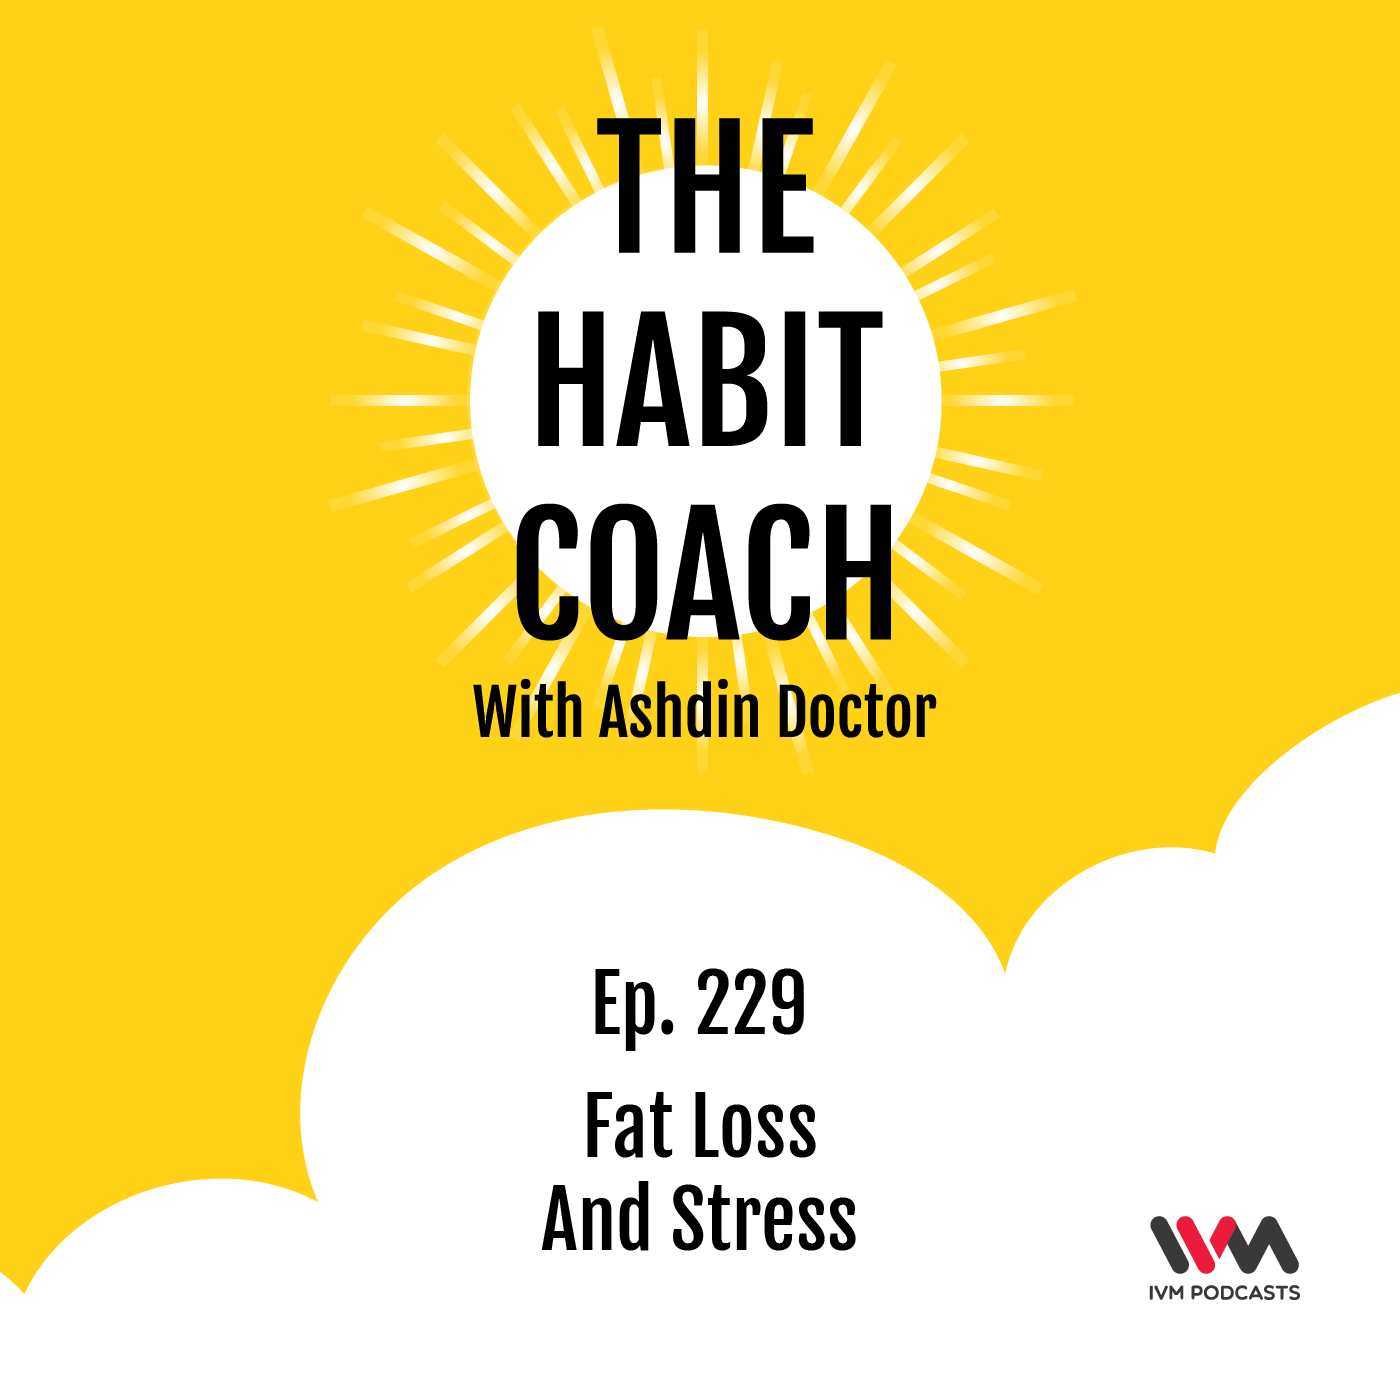 Ep. 229: Fat Loss And Stress